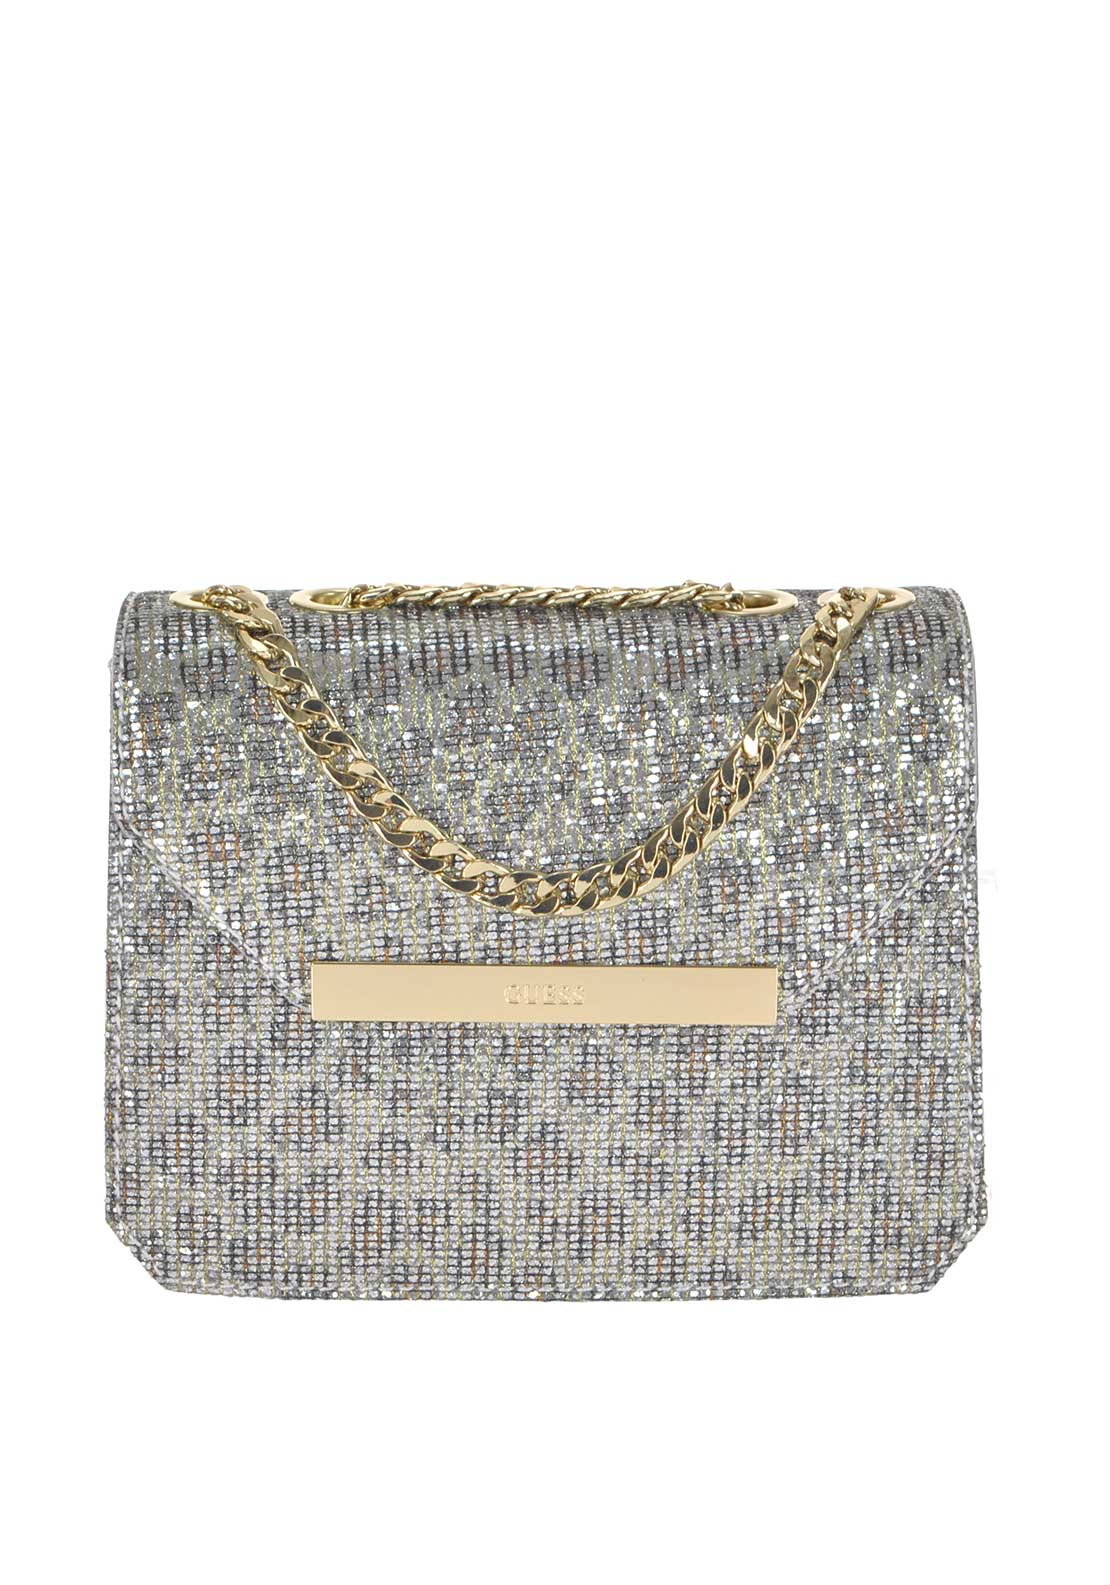 Guess Womens Famous Glitter Crossbody Bag, Silver Leopard